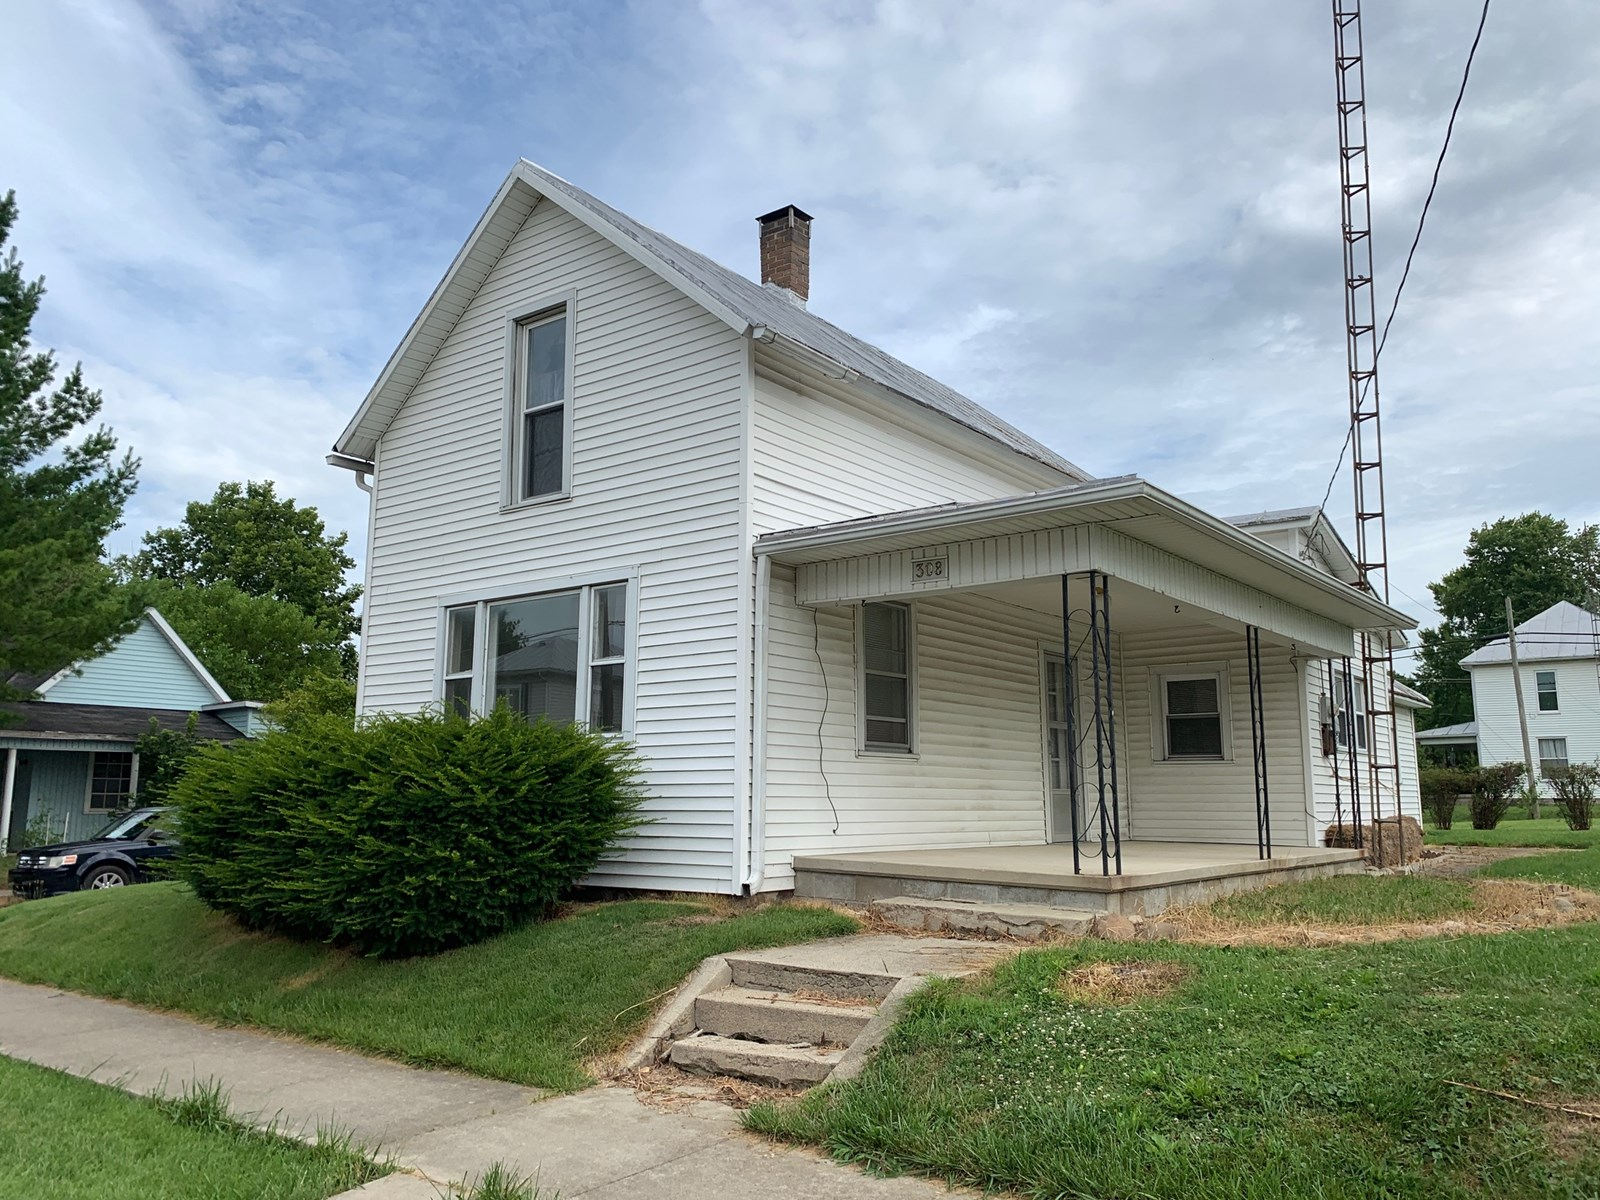 Home for Sale in Lynn, IN